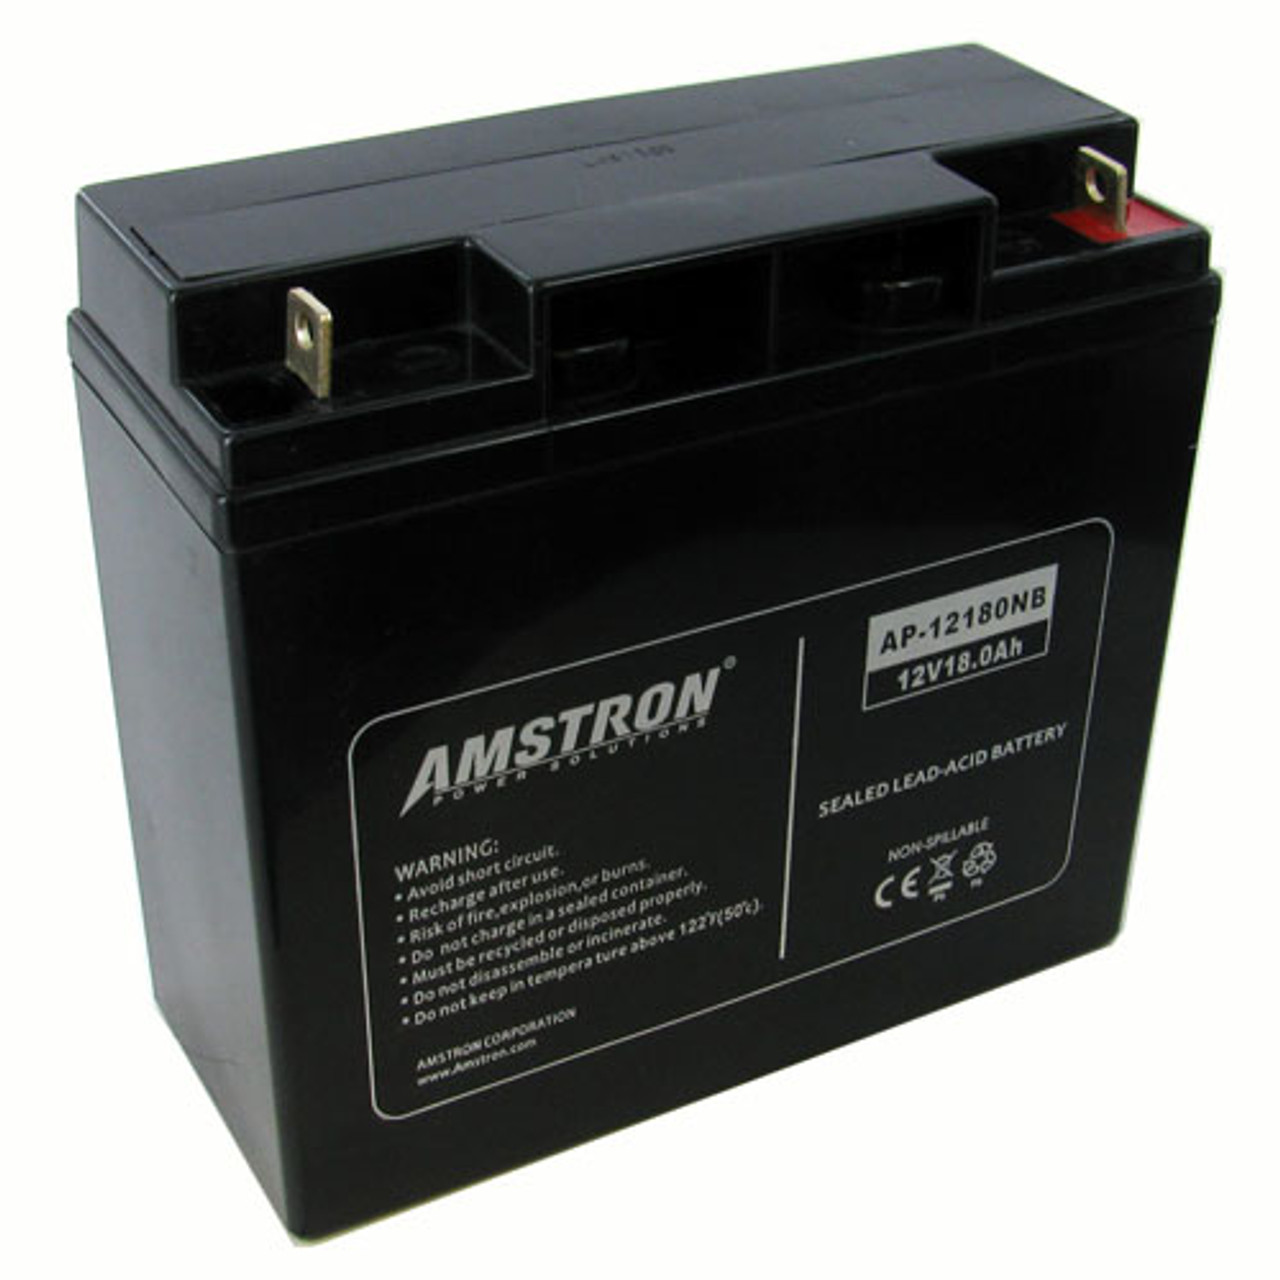 Eaton-Powerware 153302084-001 Compatible Replacement Battery Kit